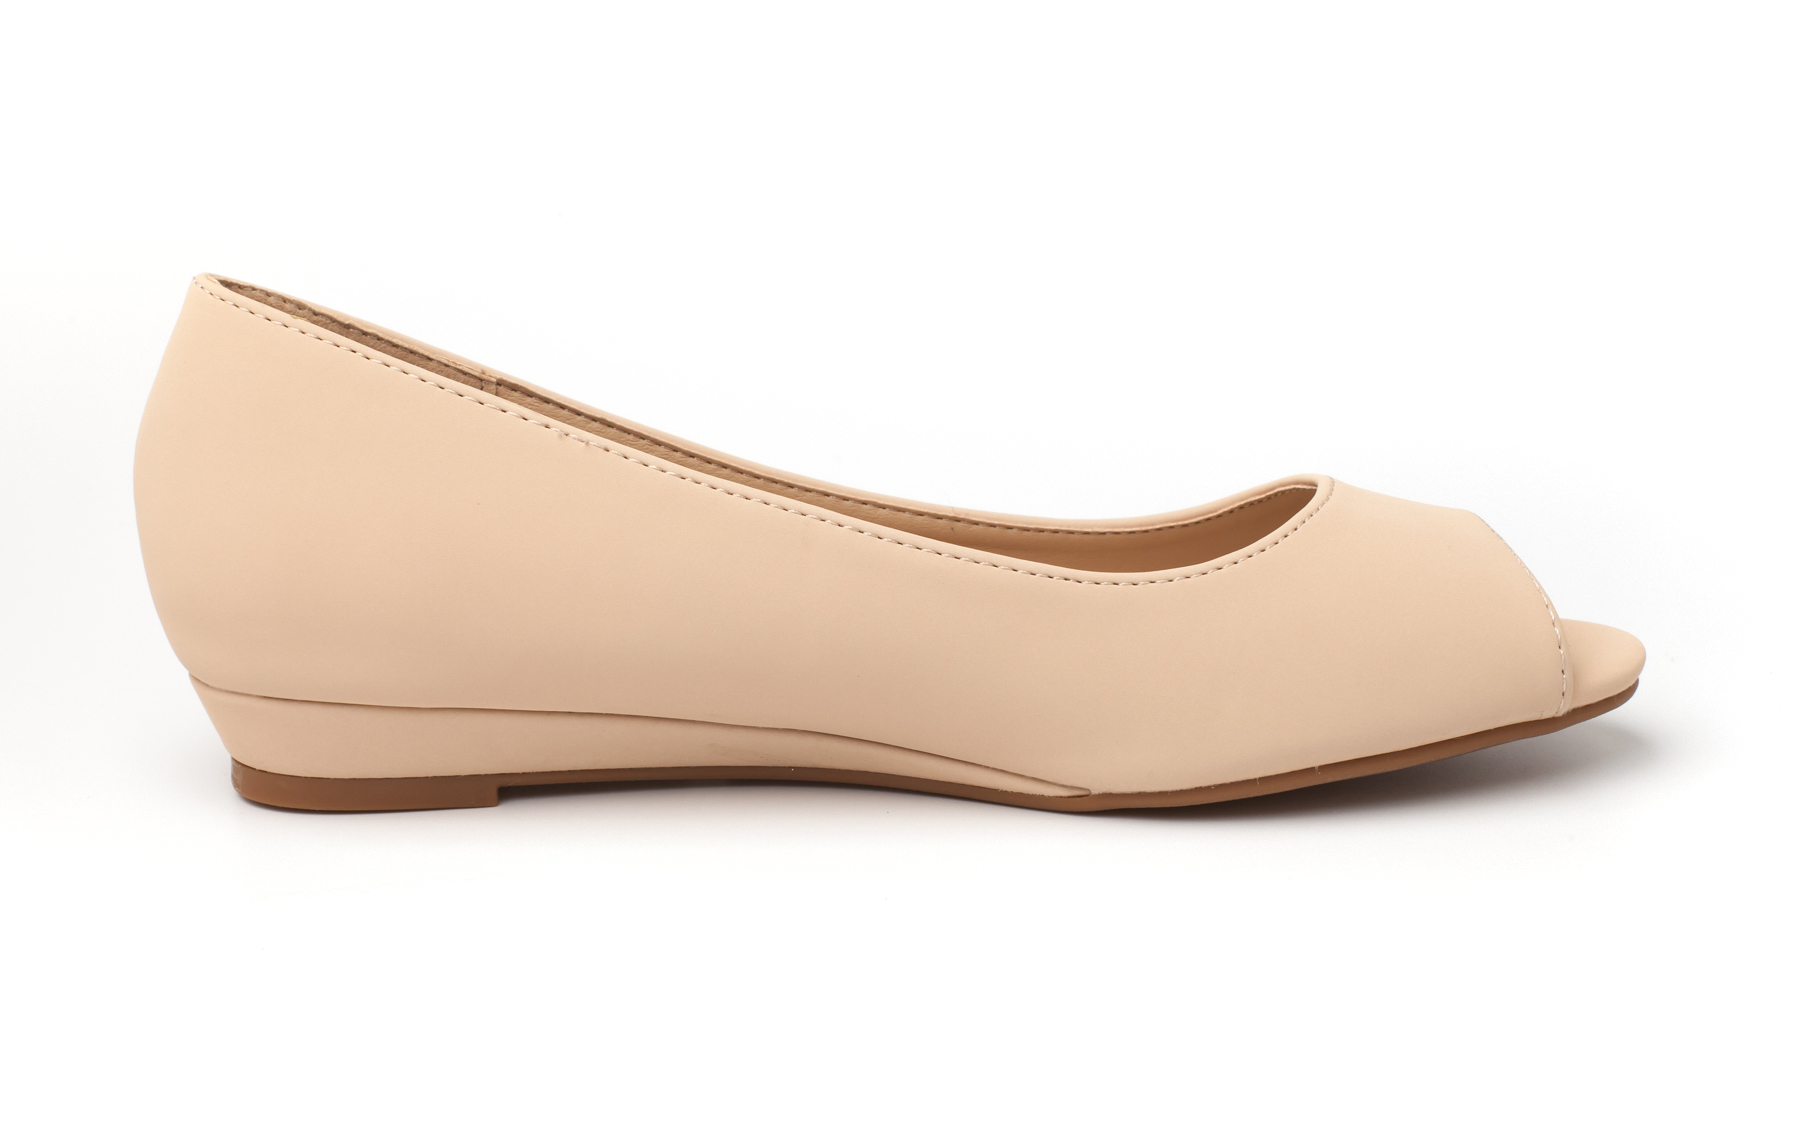 DREAM-PAIRS-Womens-Ballet-Flats-Low-Heel-Open-Toe-Slip-On-Dress-Flat-Shoes thumbnail 48